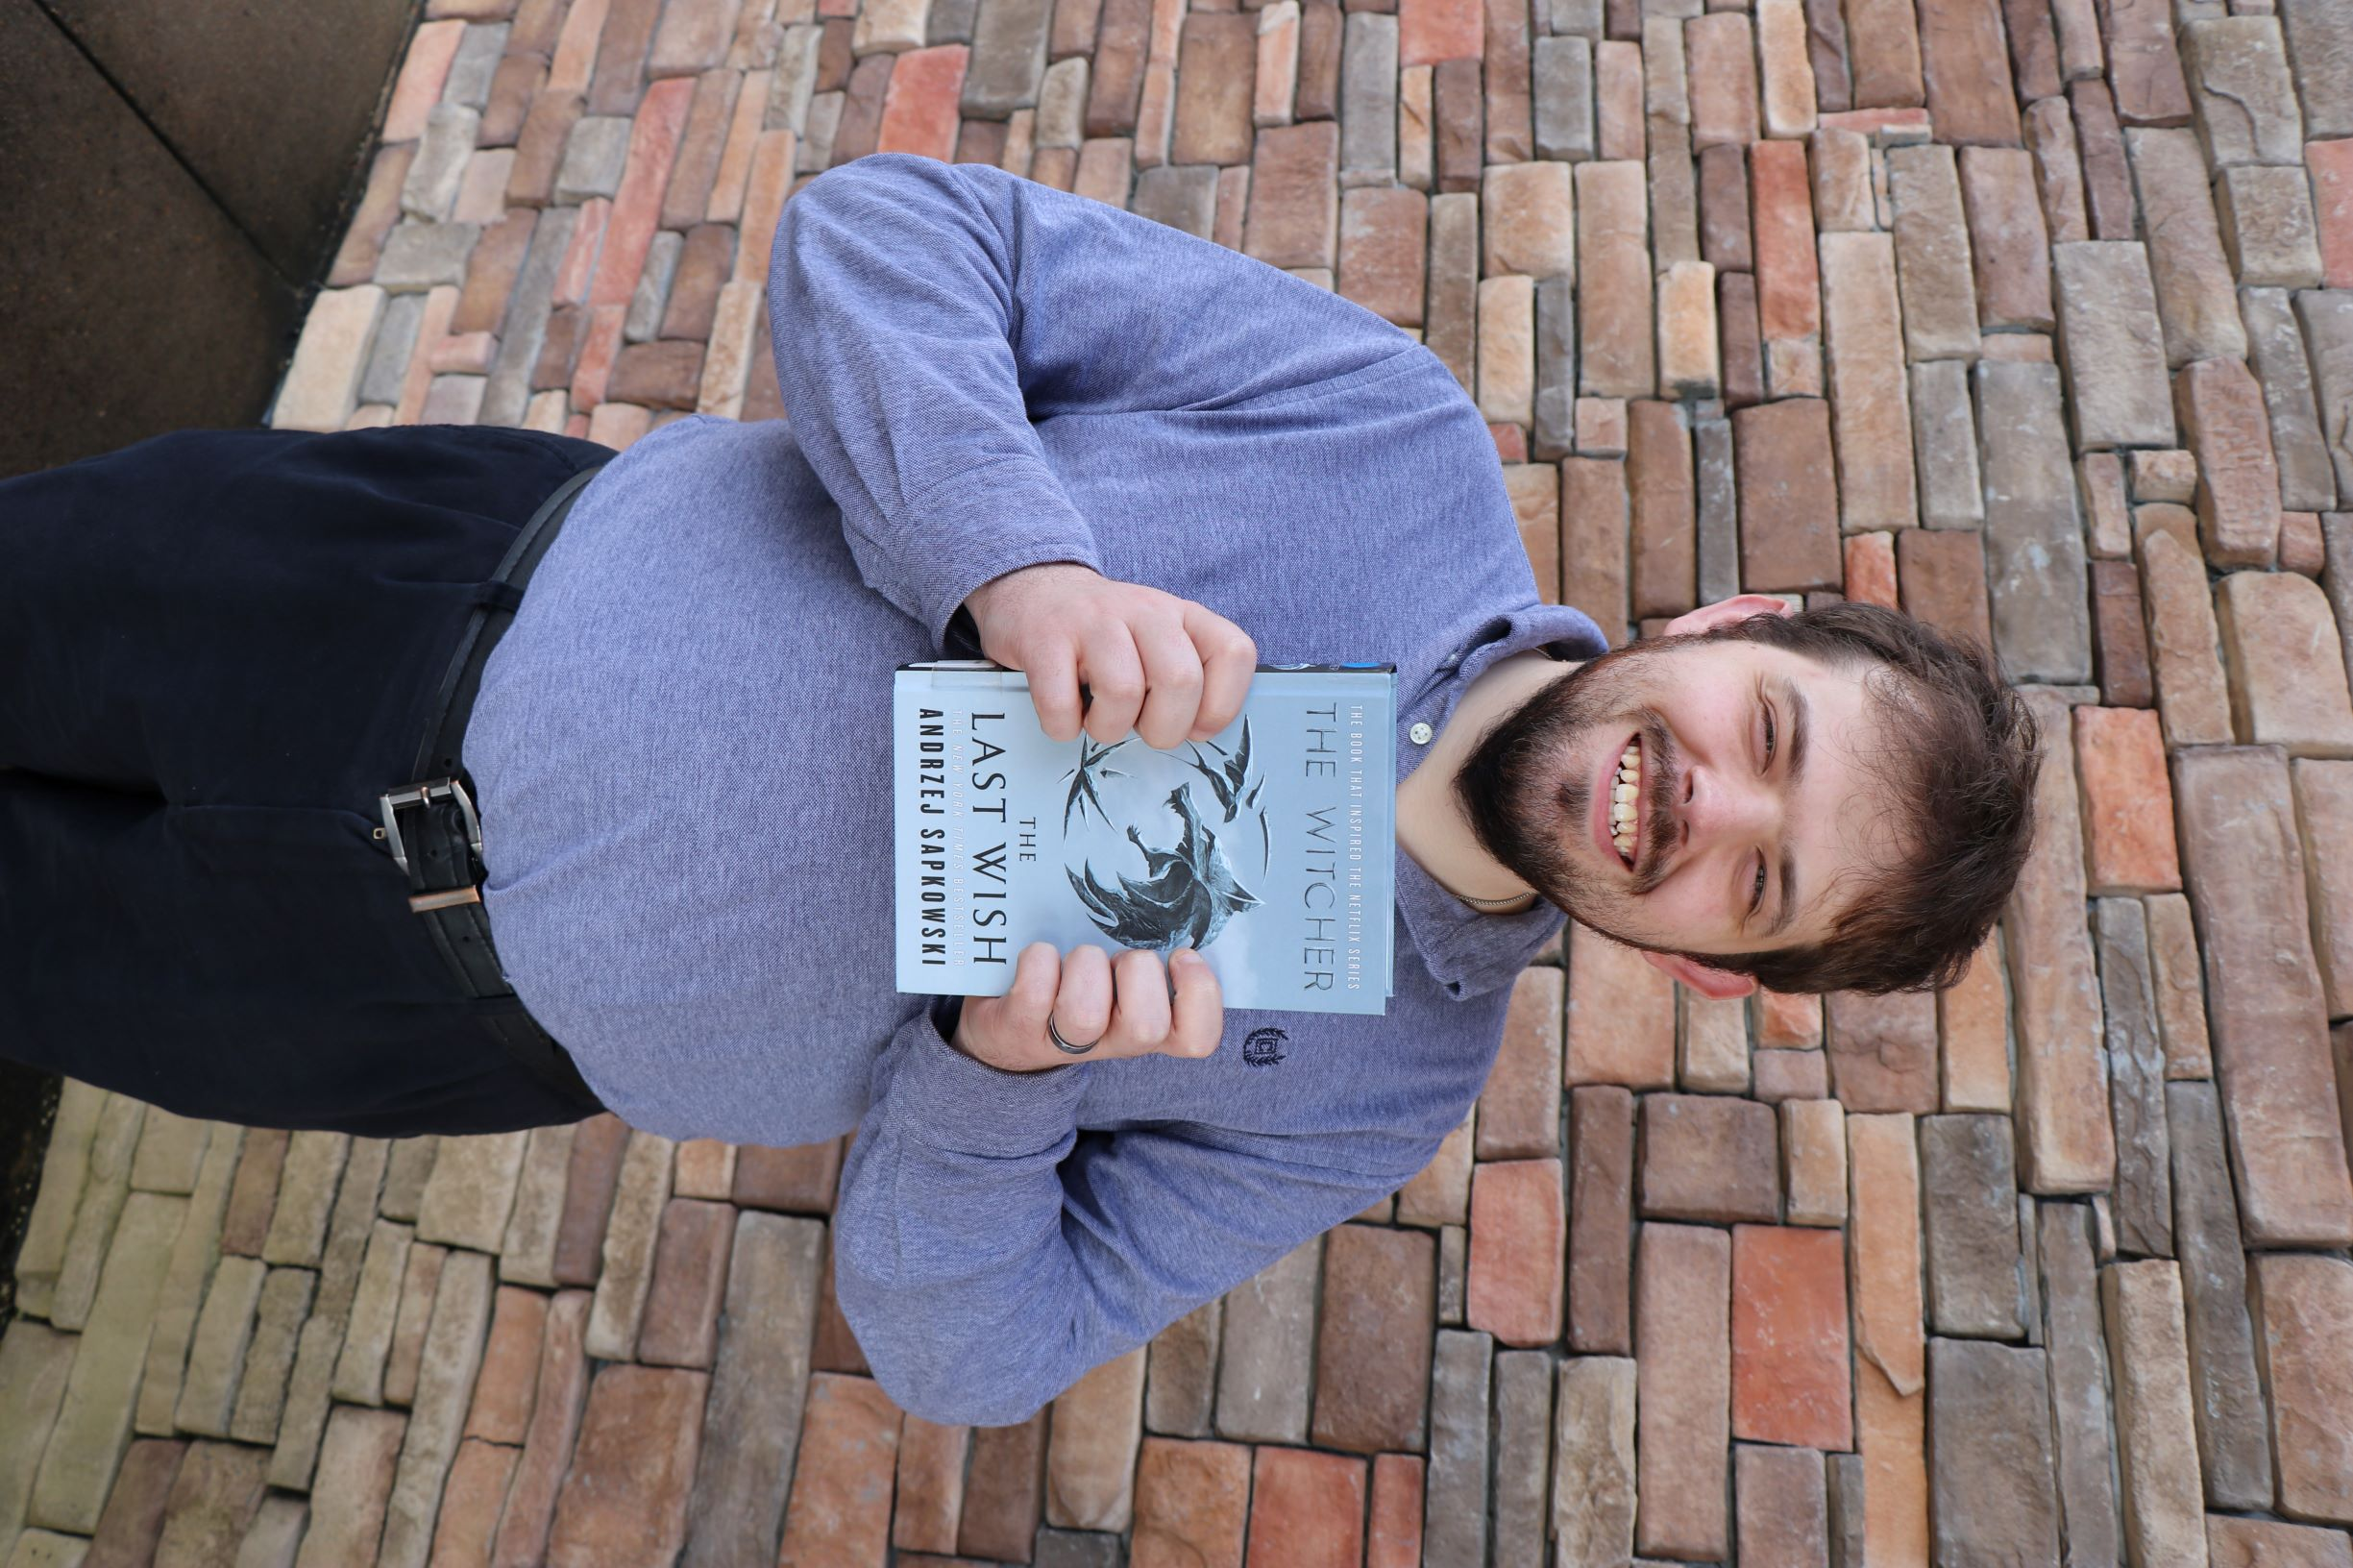 A man stands in front of a brick wall. He is holding the book The Last Wish.